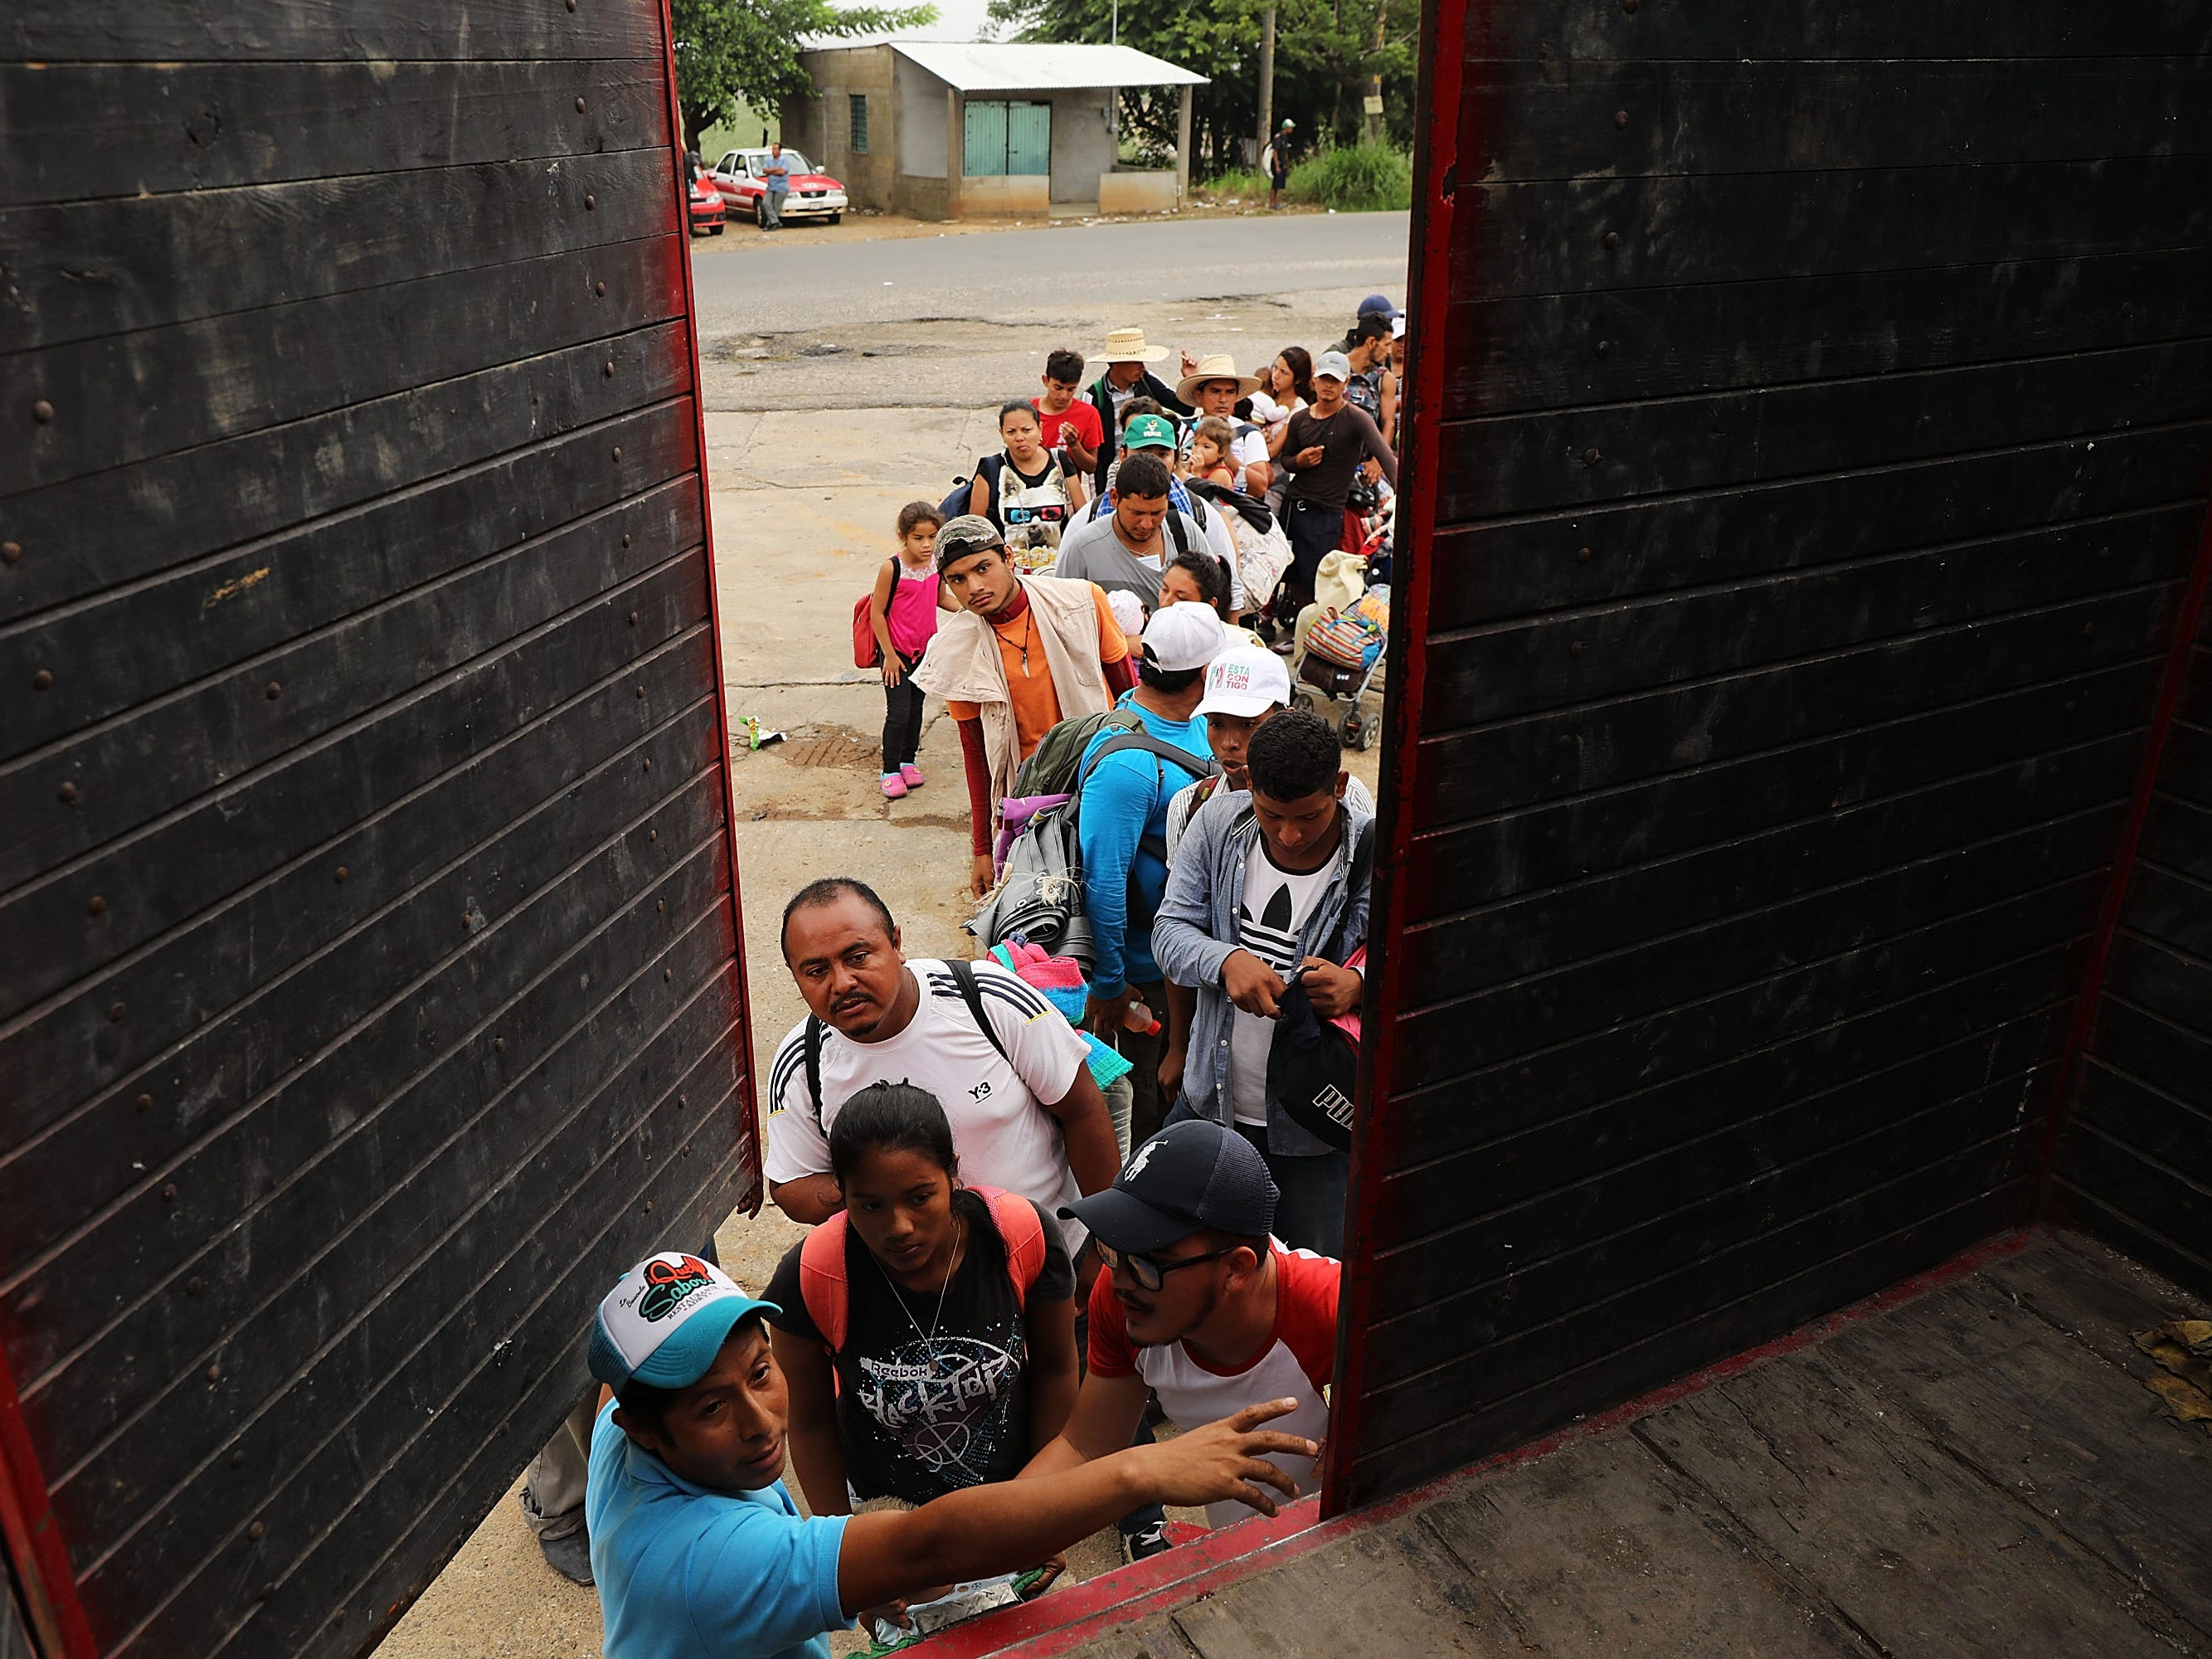 Dozens of Central American migrants  move in the early hours toward their next destination on Nov. 4, 2018, in Isla, Mexico. The migrants, many of them fleeing violence in their home countries, last took a rest day on Wednesday and have resumed their march to the United States border.